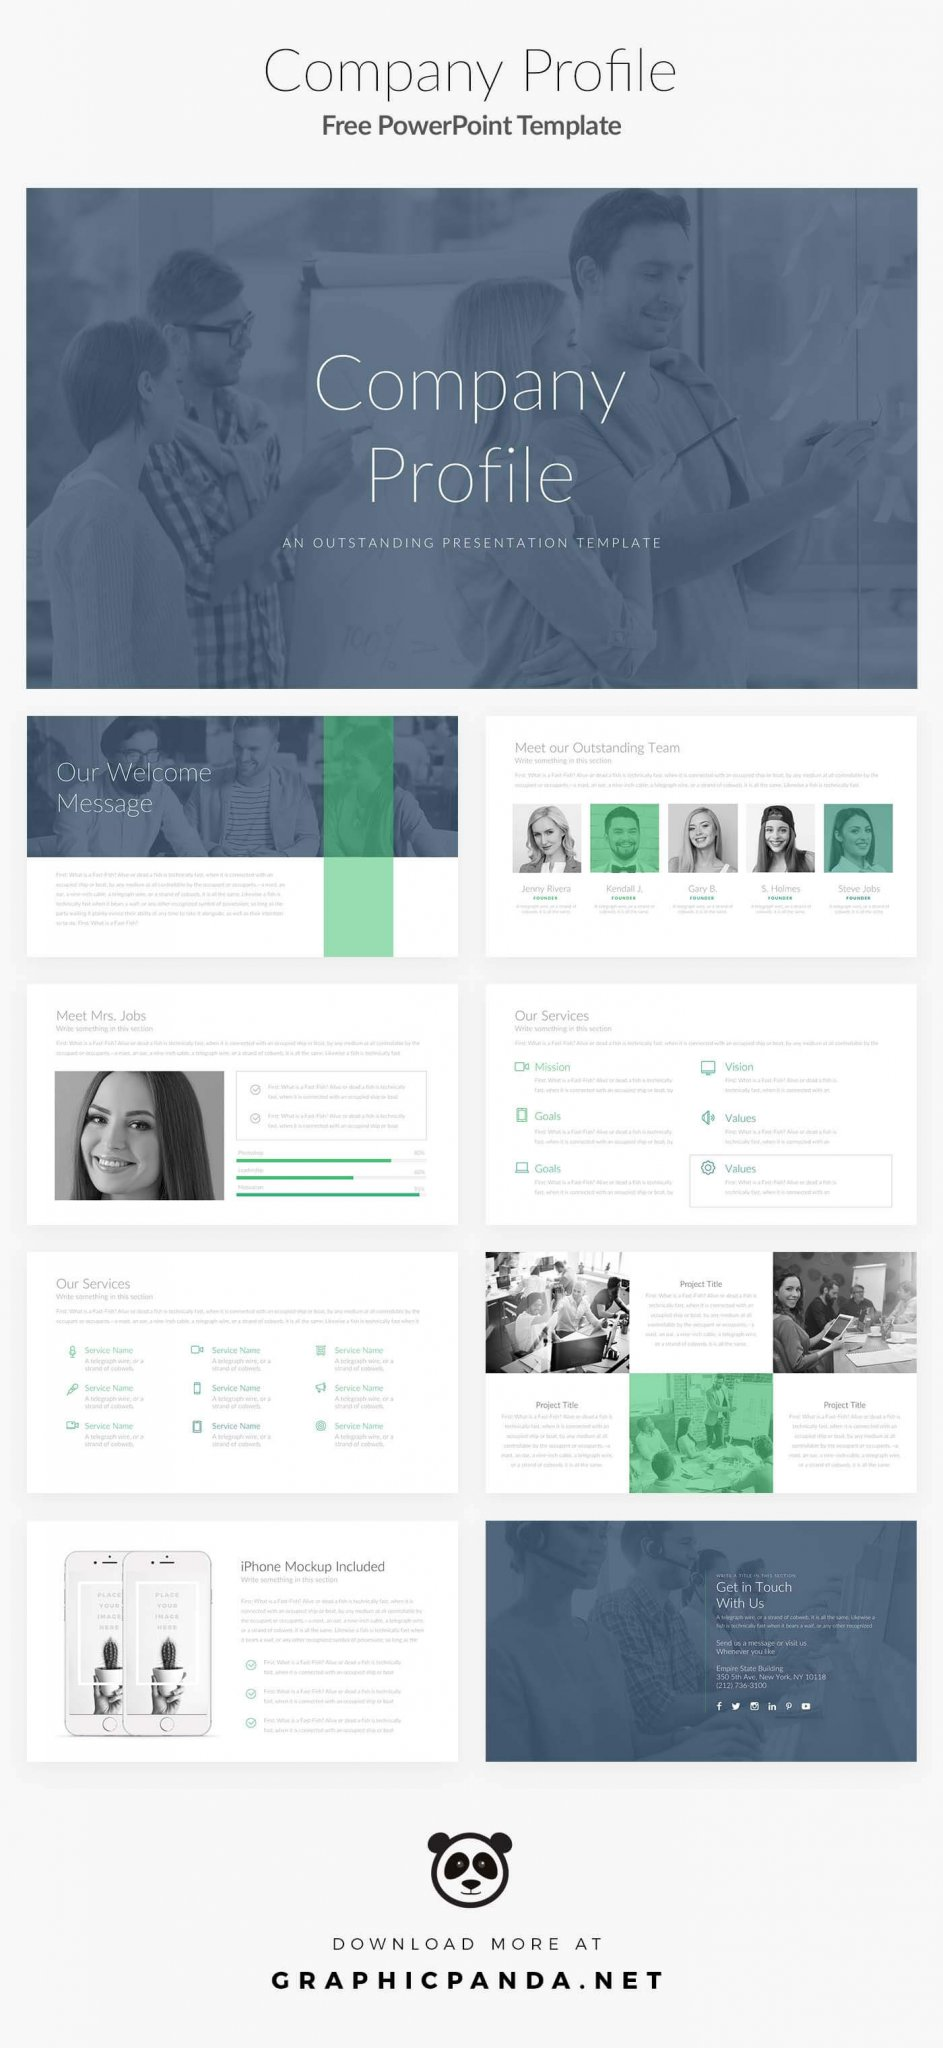 free powerpoint template company profile best free powerpoint template 2017 download